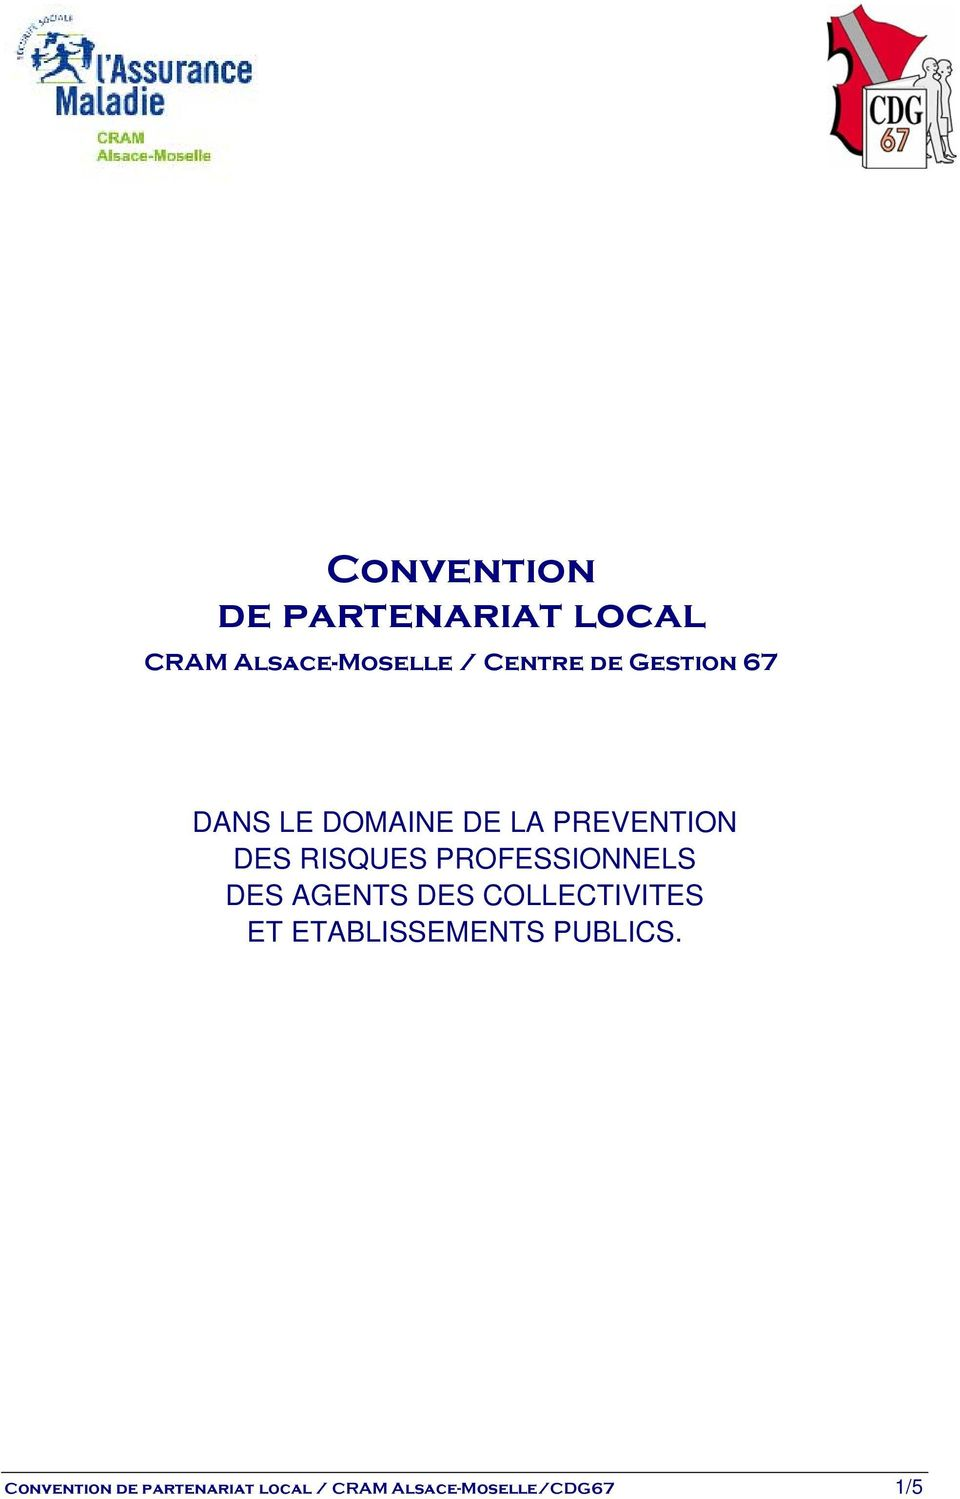 PROFESSIONNELS DES AGENTS DES COLLECTIVITES ET ETABLISSEMENTS